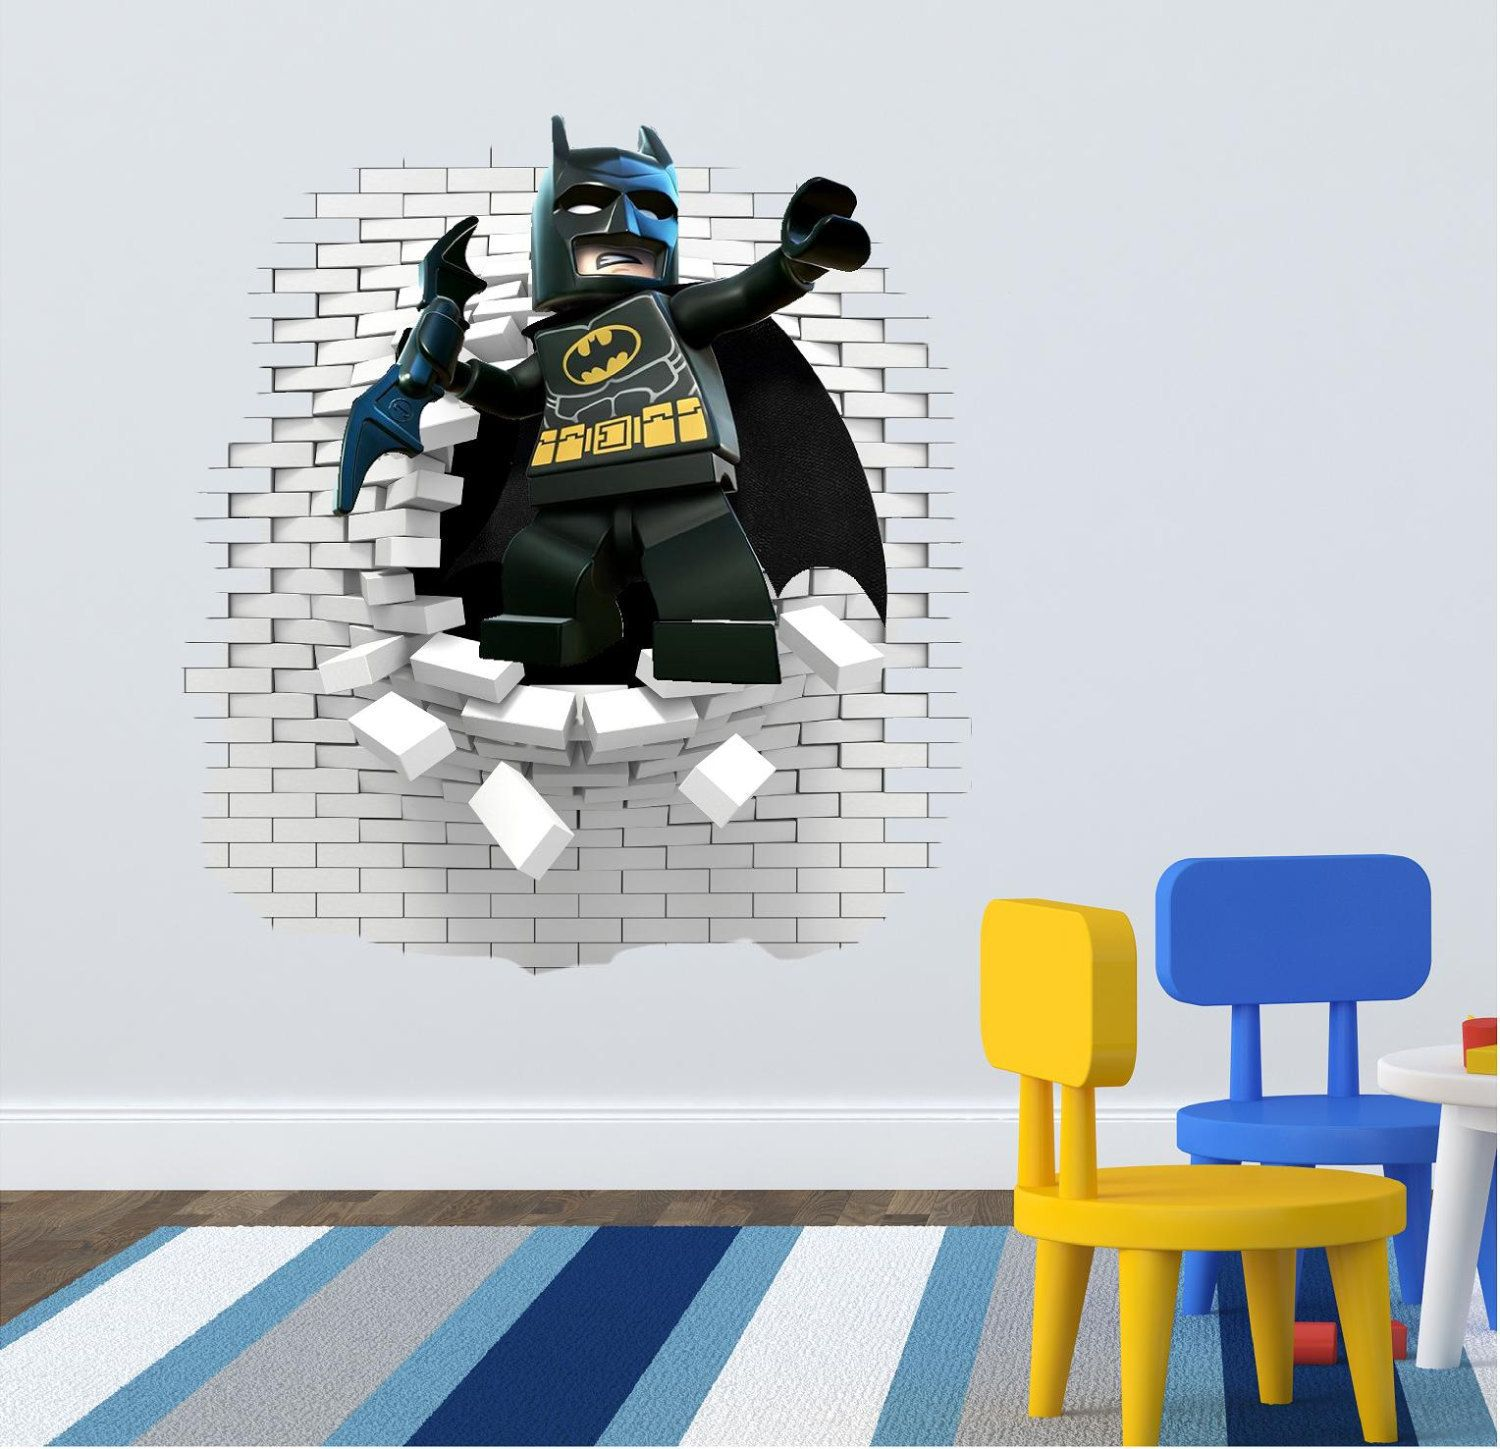 3d lego batman wall decal great for the kids room by artogtext on 3d lego batman wall decal great for the kids room by artogtext on etsy amipublicfo Images